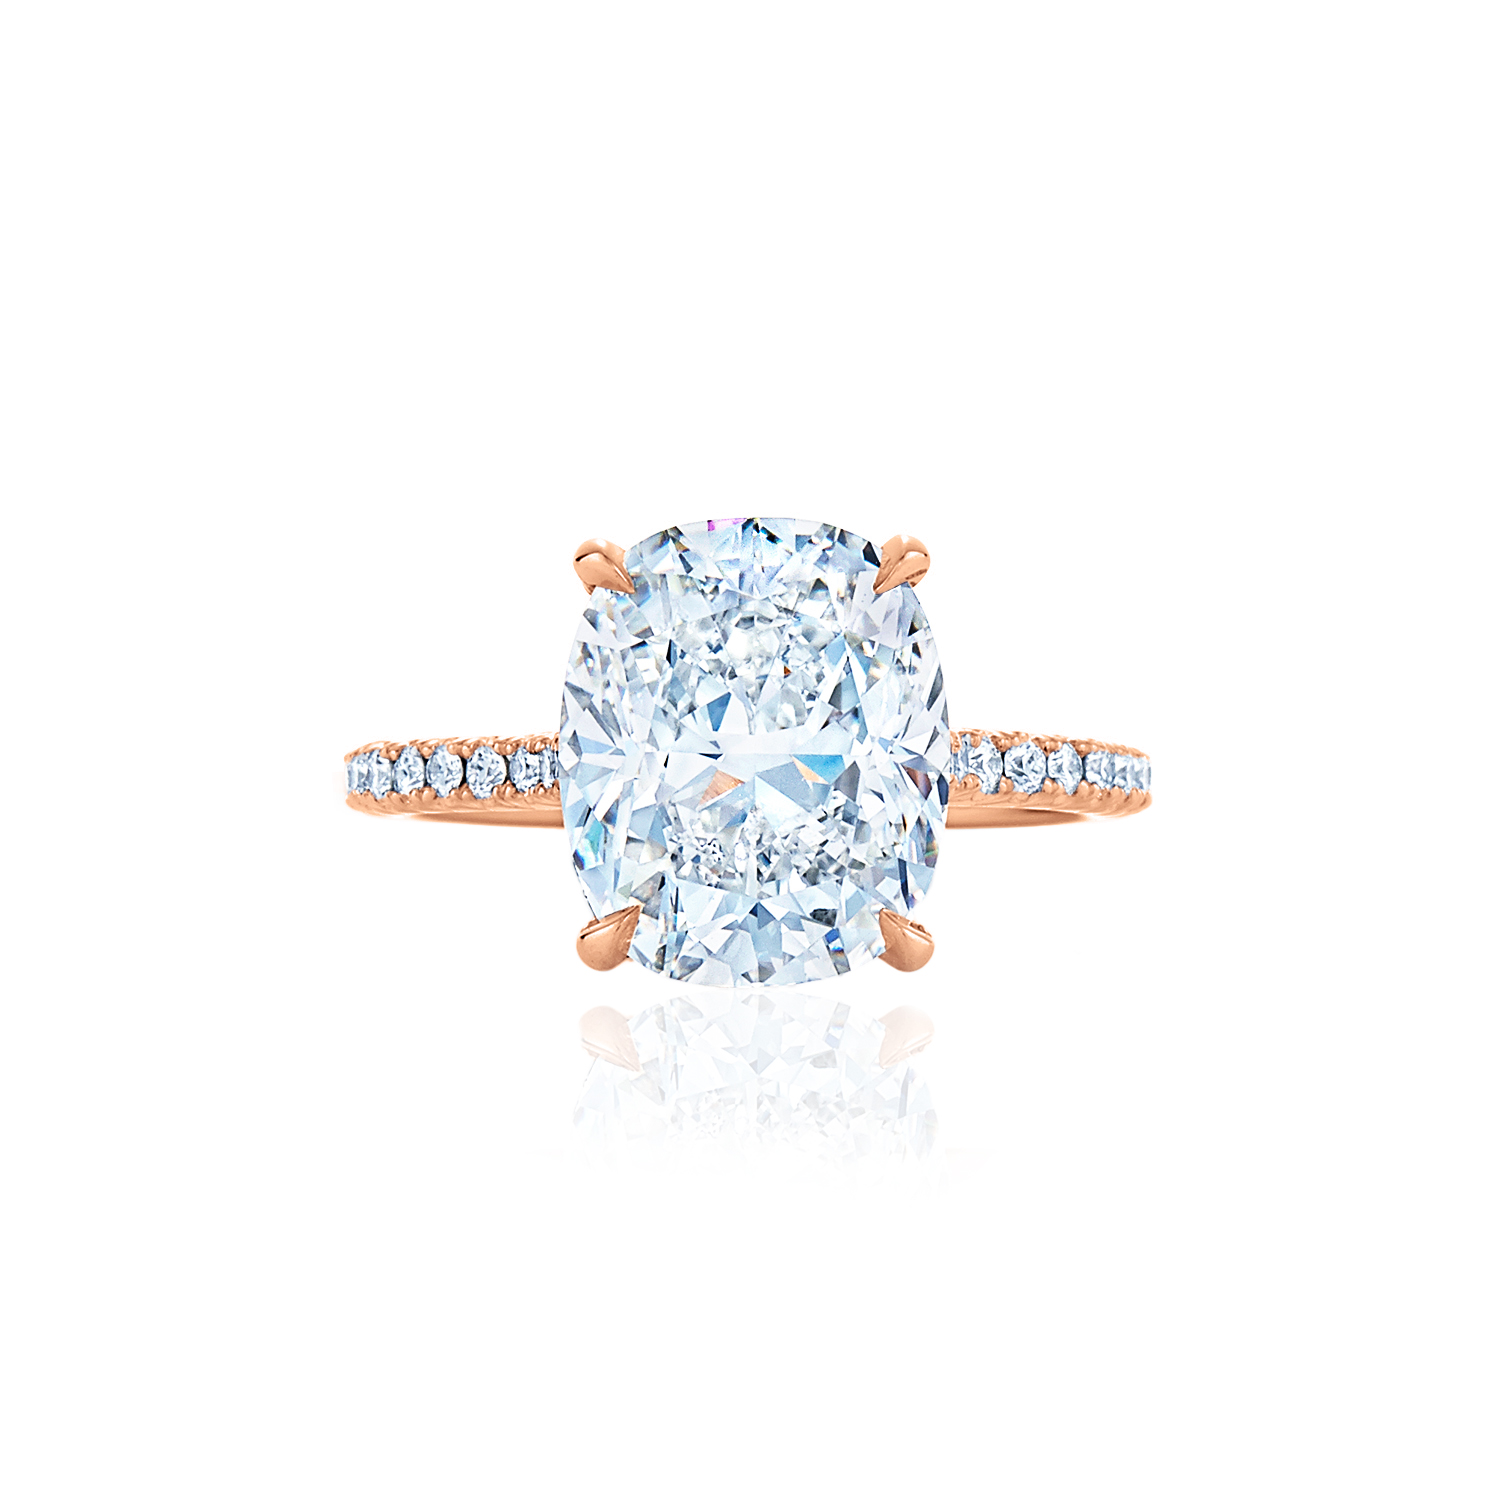 weldons cusion cushion dublin shop of cut diamond ring